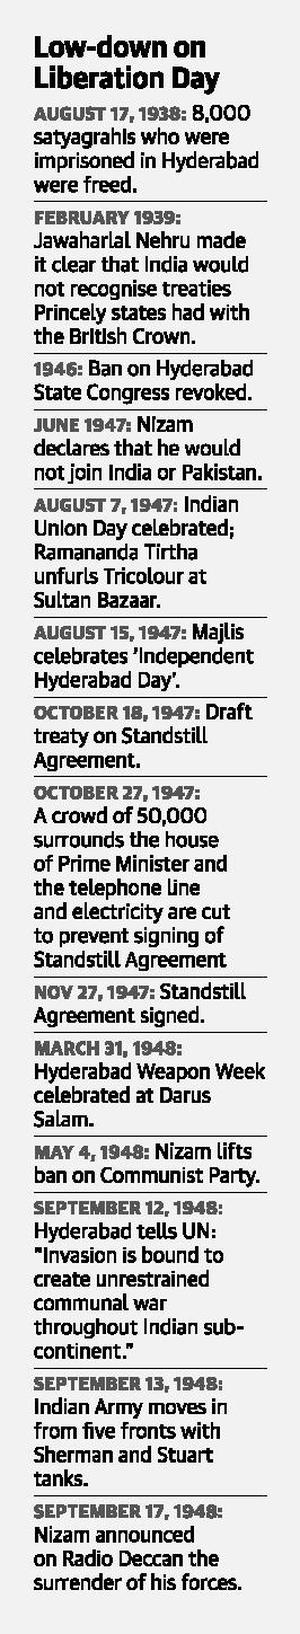 Hyderabad liberation day still an enigma the hindu hyderabad liberation day still an enigma platinumwayz